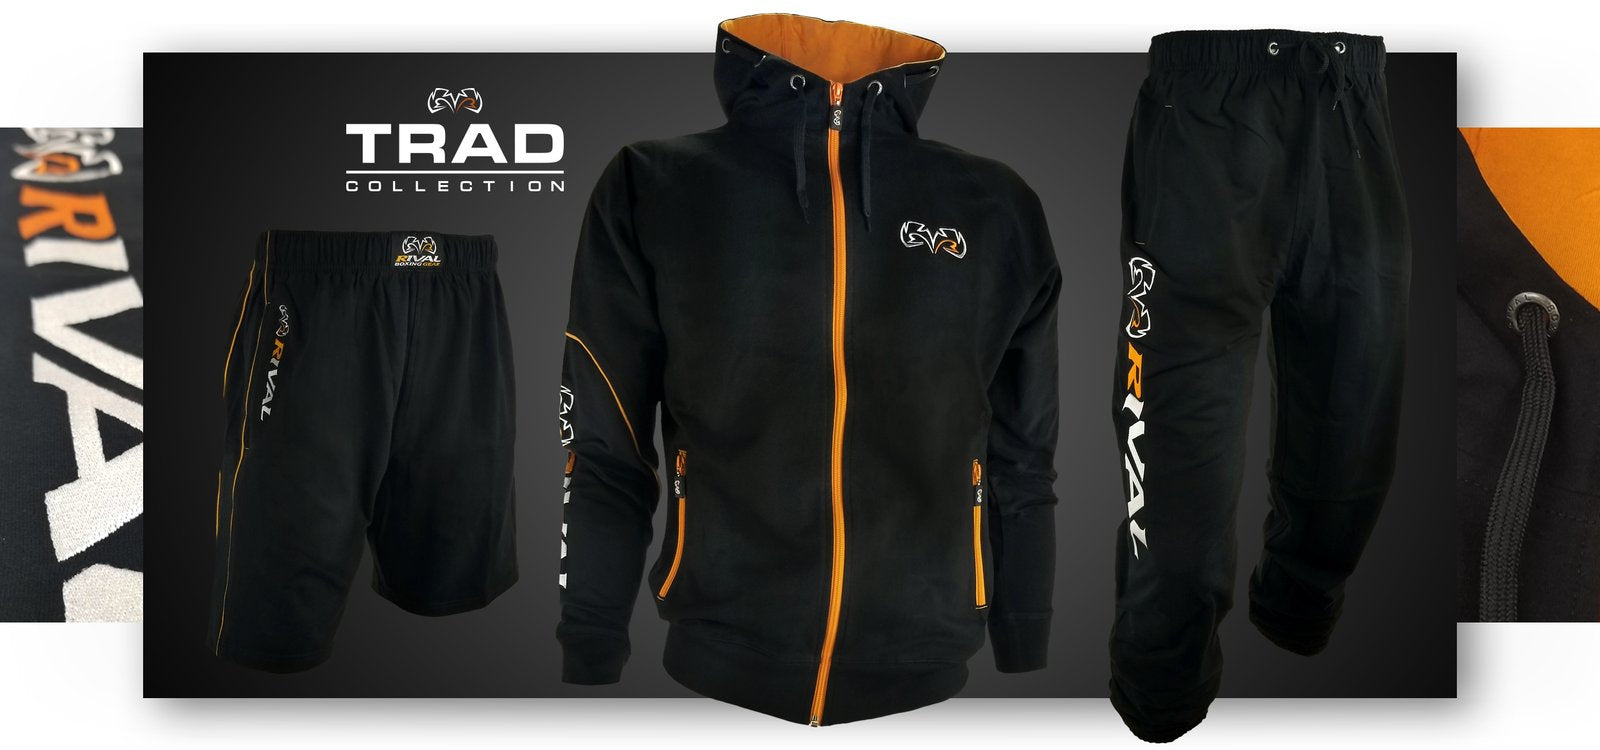 Rival TRAD Apparel